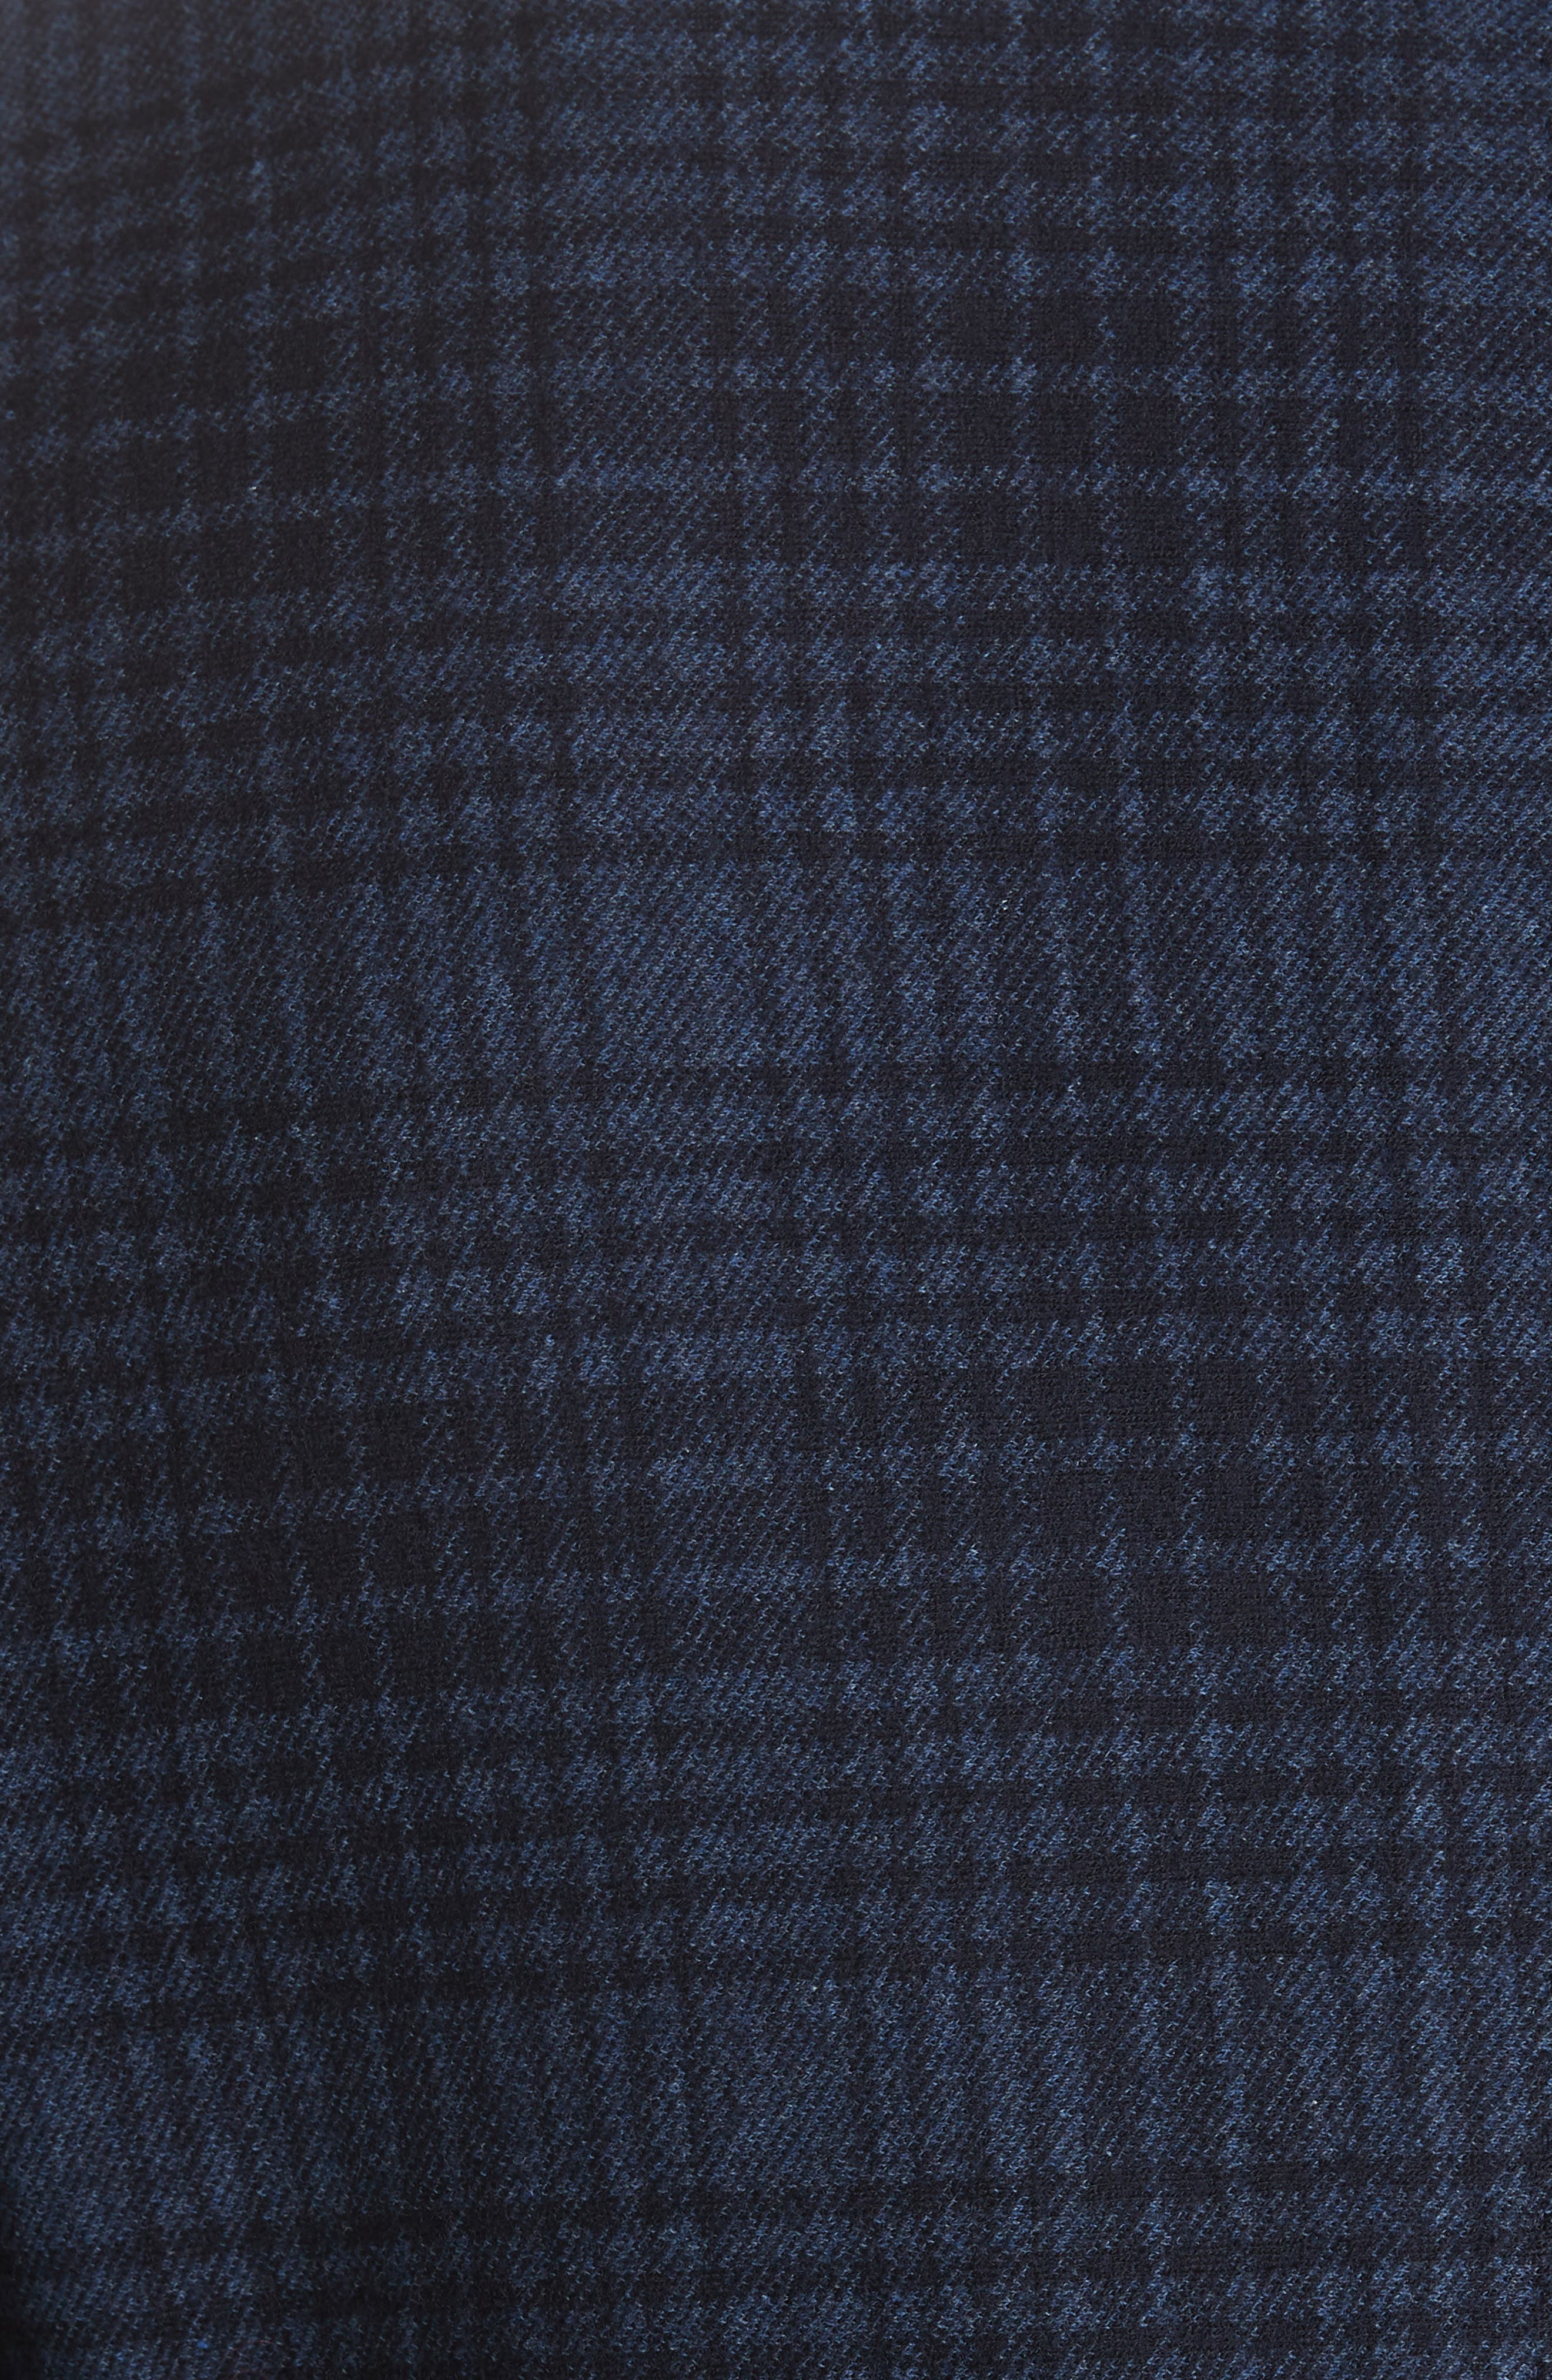 Slim Fit Plaid Wool & Cotton Sport Coat,                             Alternate thumbnail 3, color,                             Blue